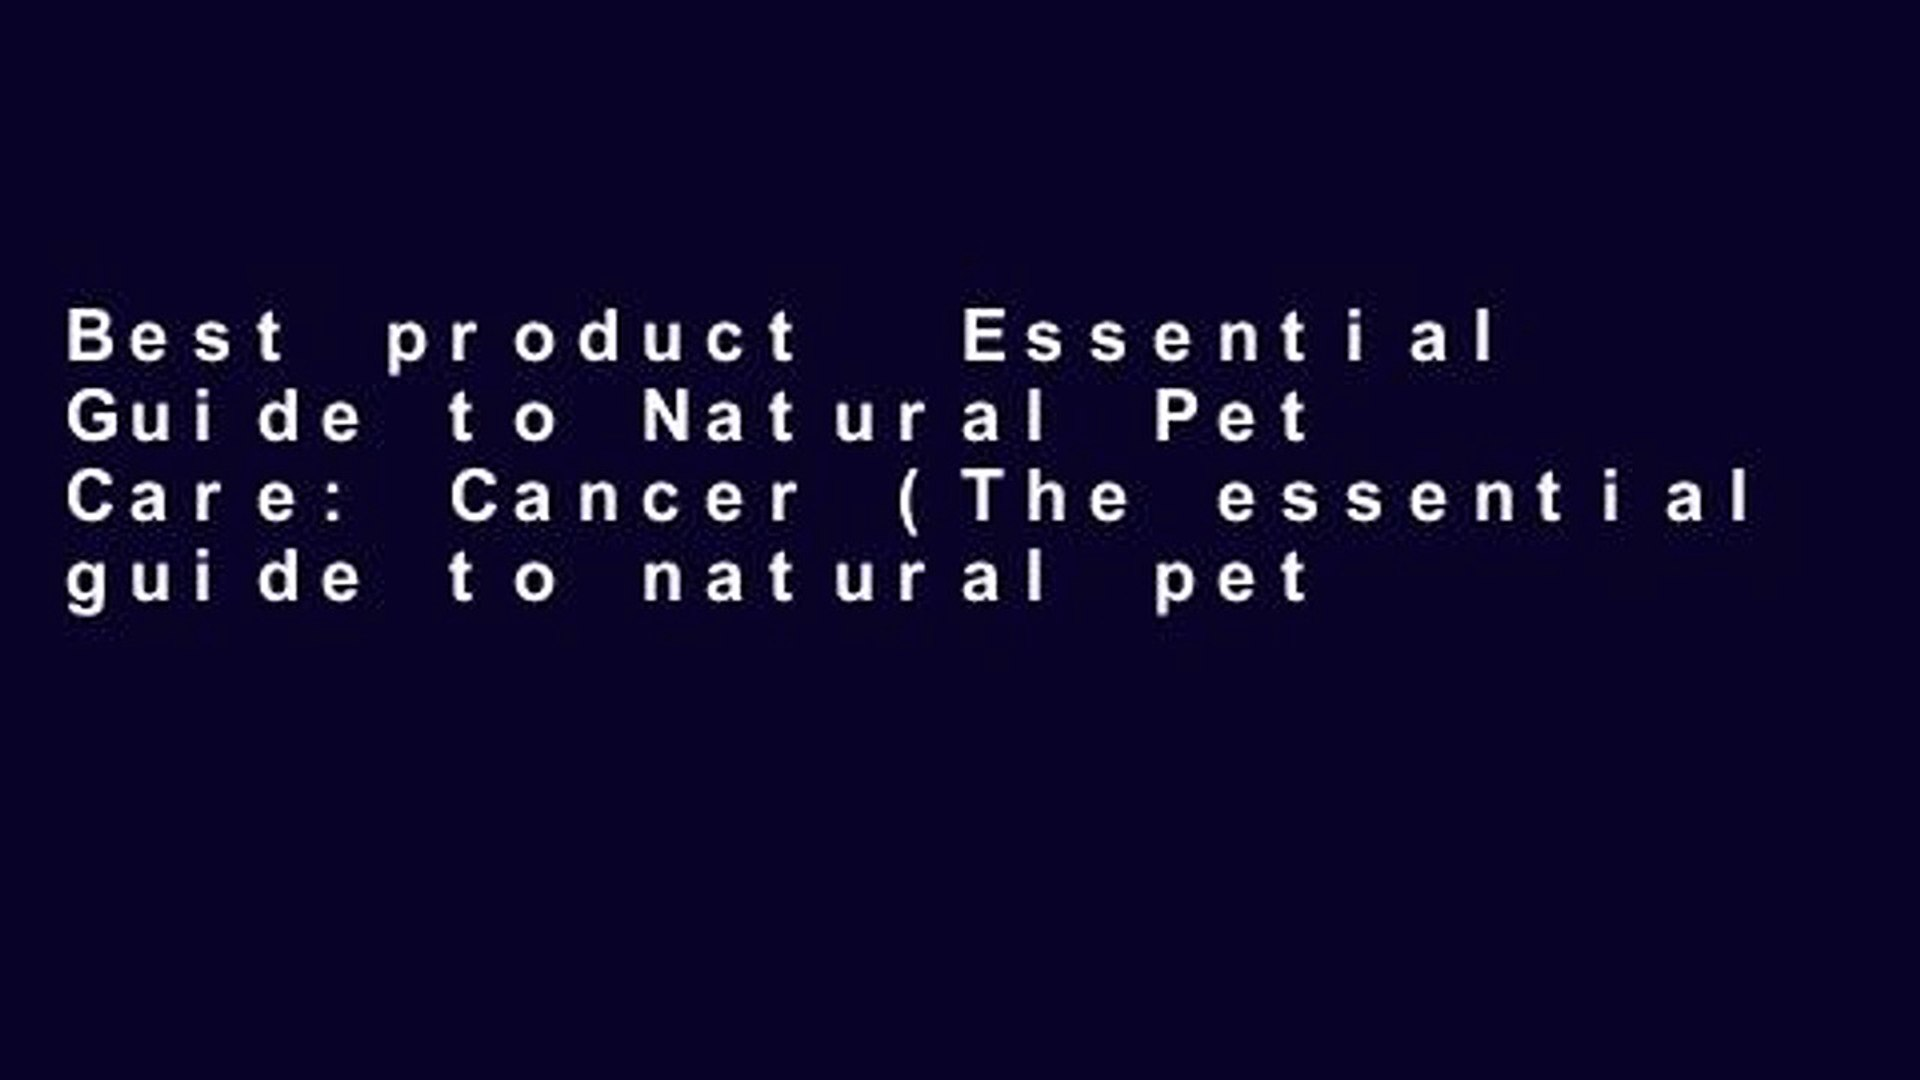 Best product  Essential Guide to Natural Pet Care: Cancer (The essential guide to natural pet